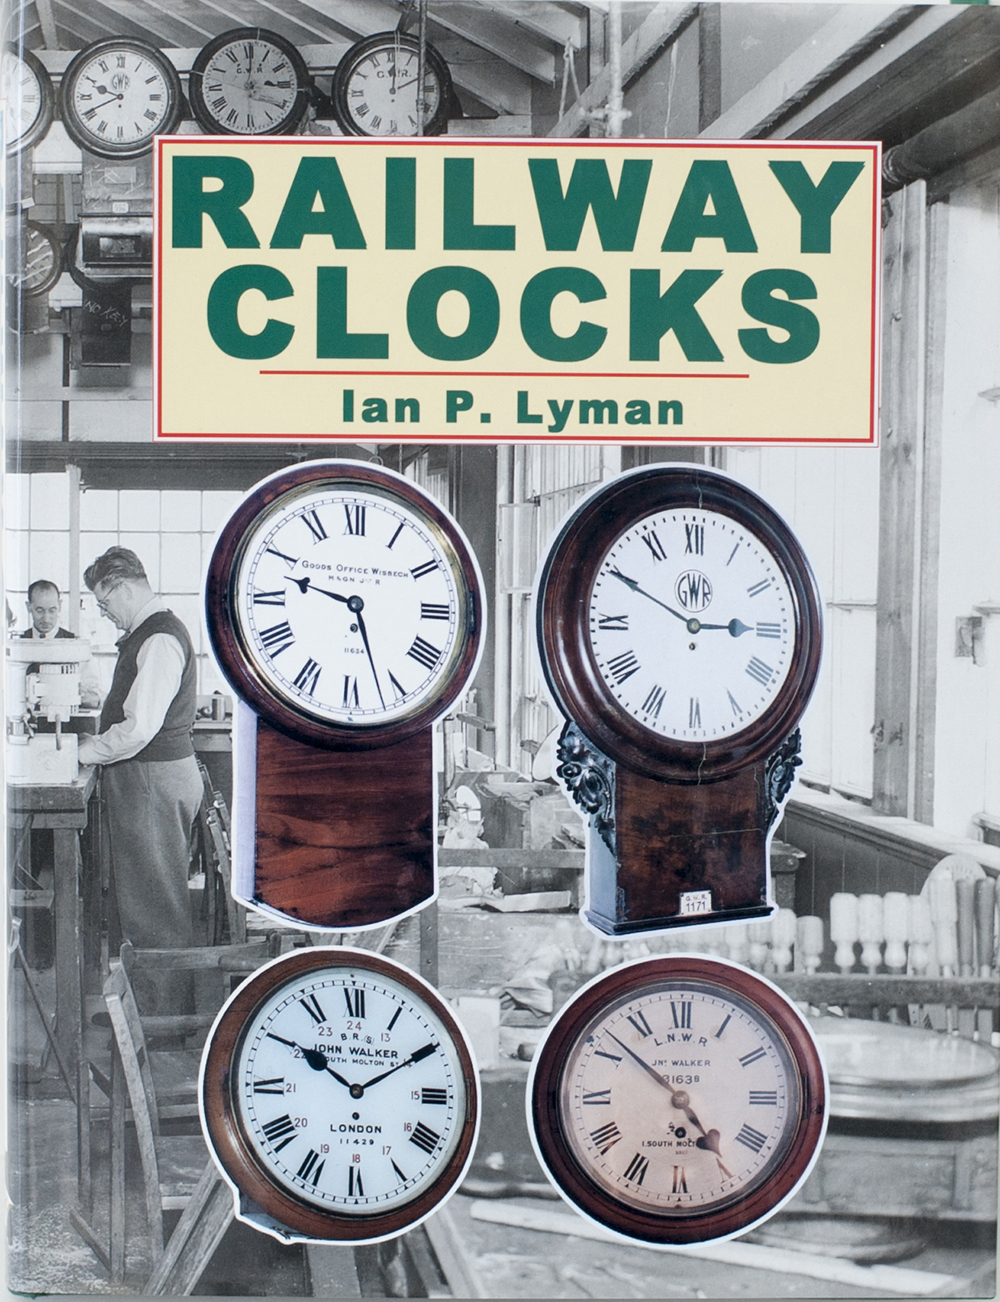 Lot 231 - Book RAILWAY CLOCKS by Ian P Lyman, The Reference Book for British Railway Clocks, published by